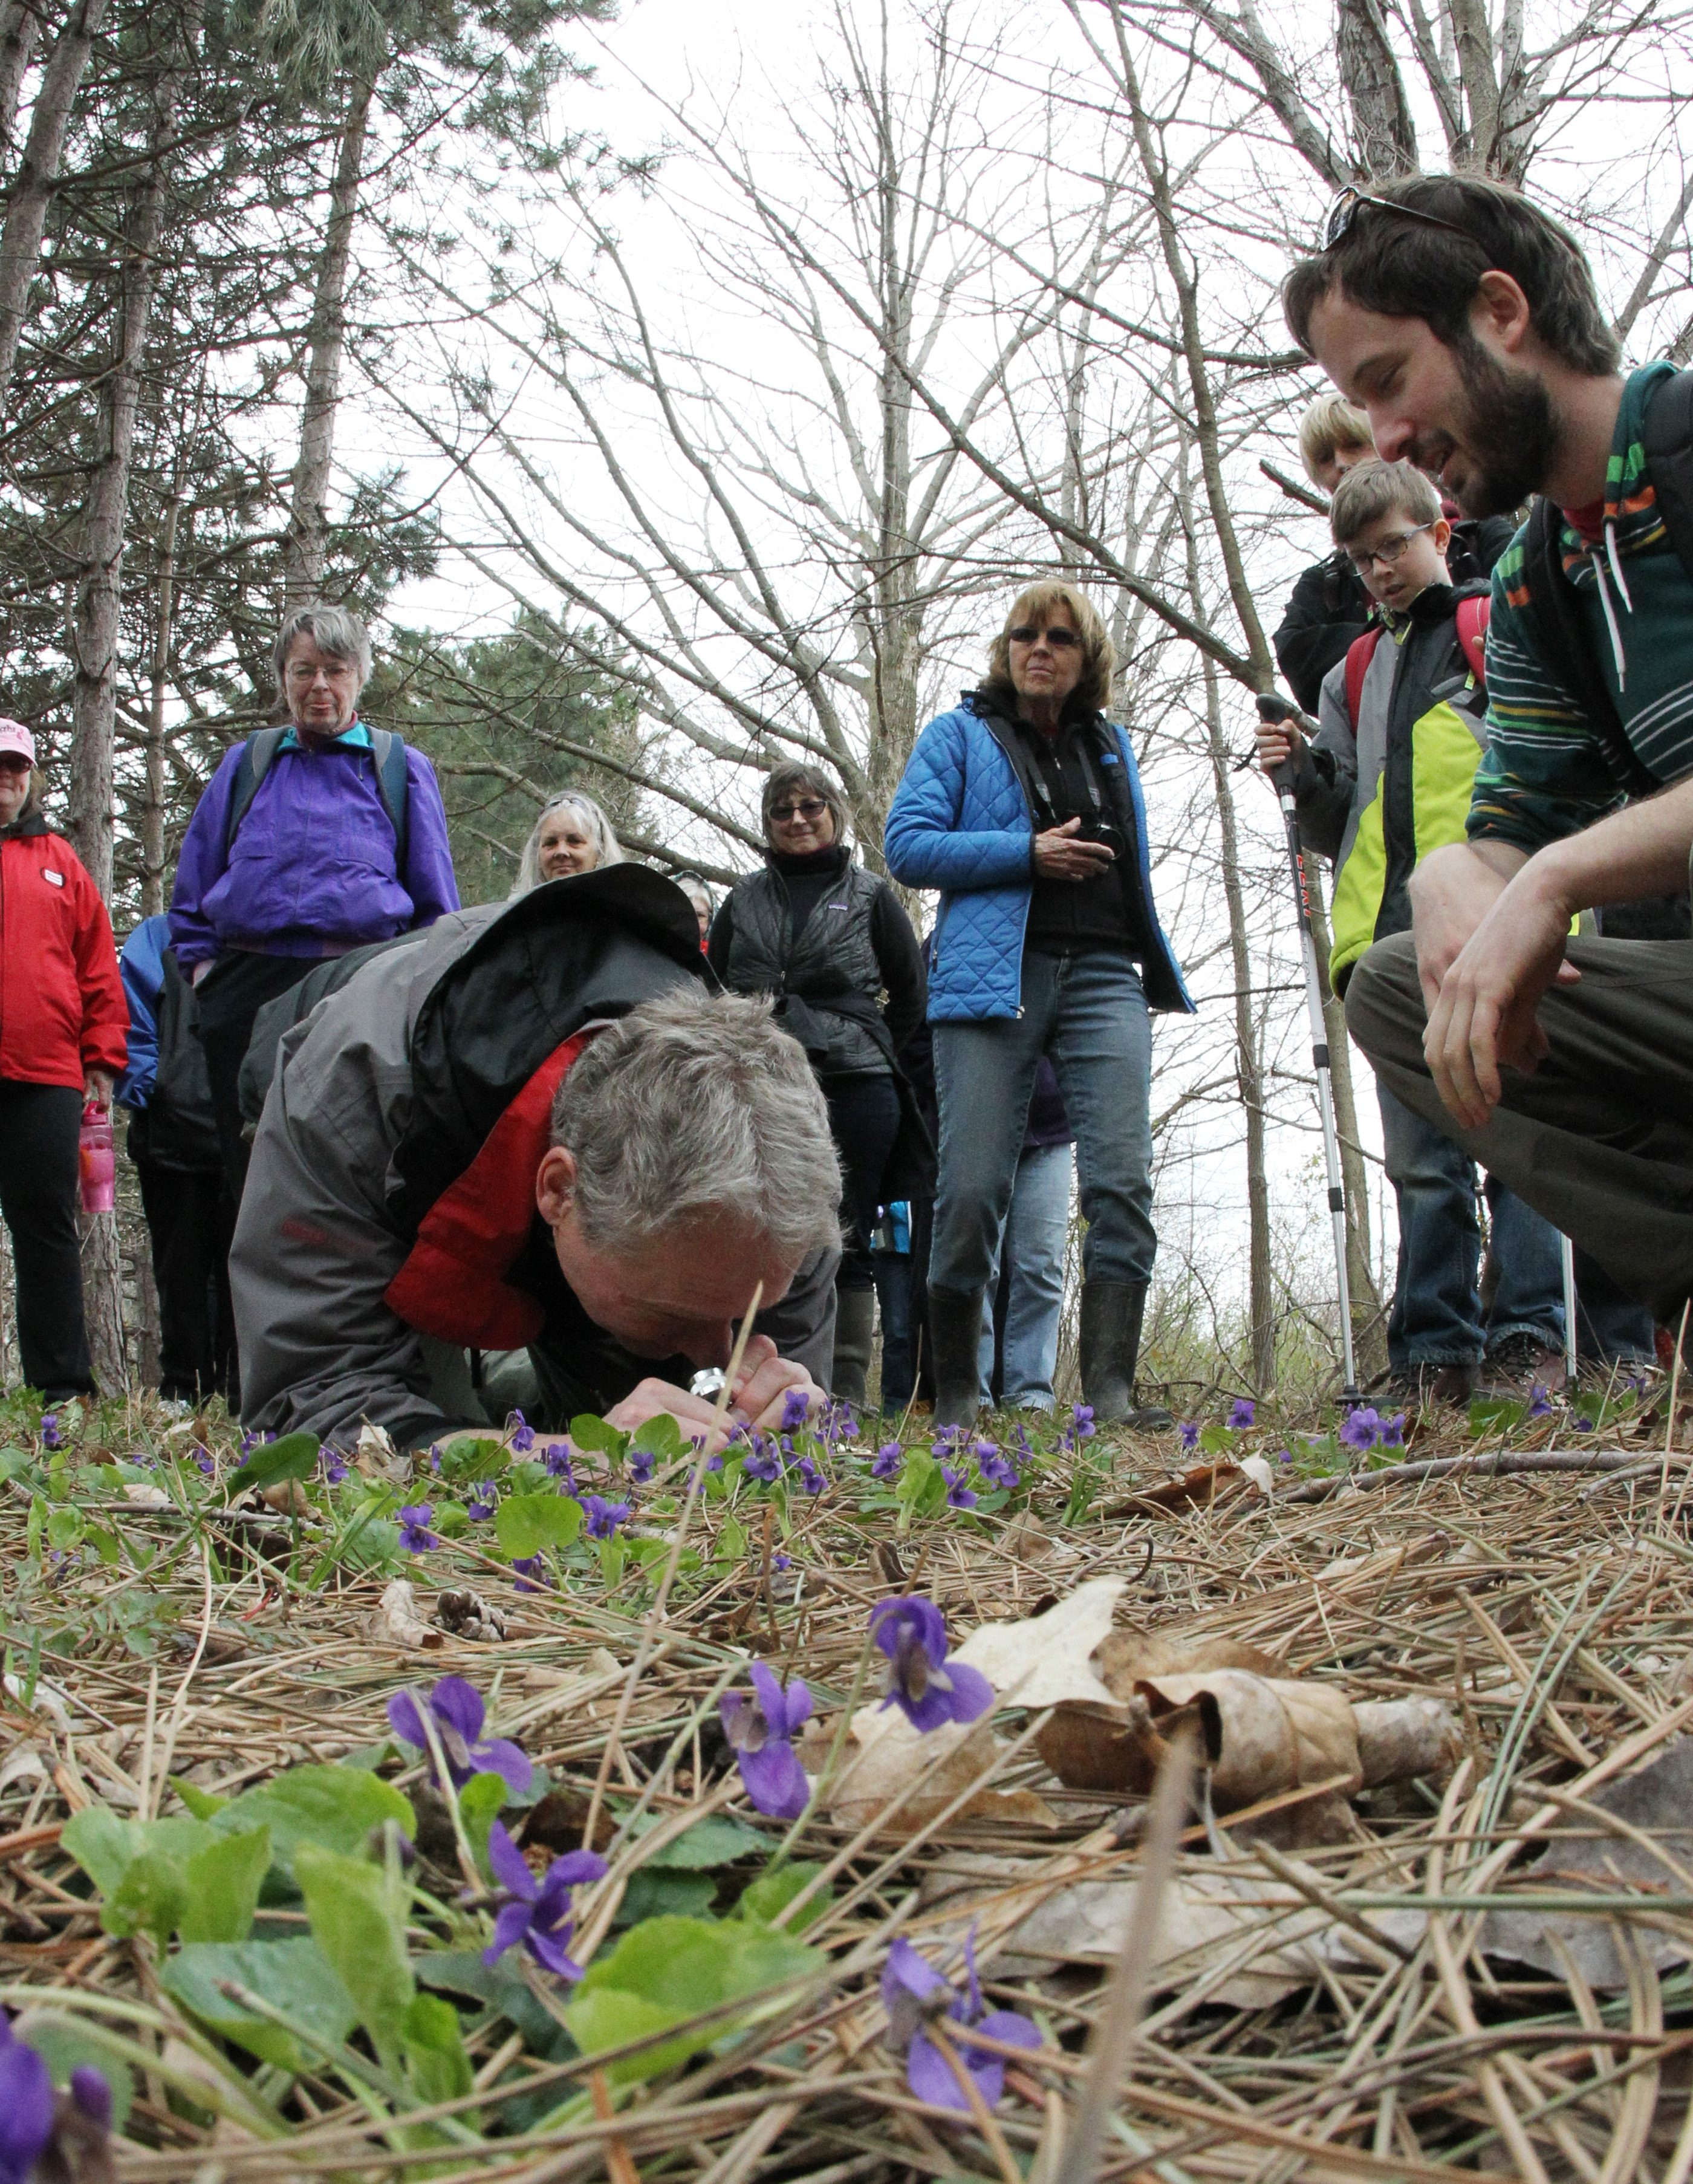 Edward Fuchs, left foreground, and Matt Candeias are among nature group members getting a close look at vari- ous flora at Niagara Escarpment Preserve in Lockport.